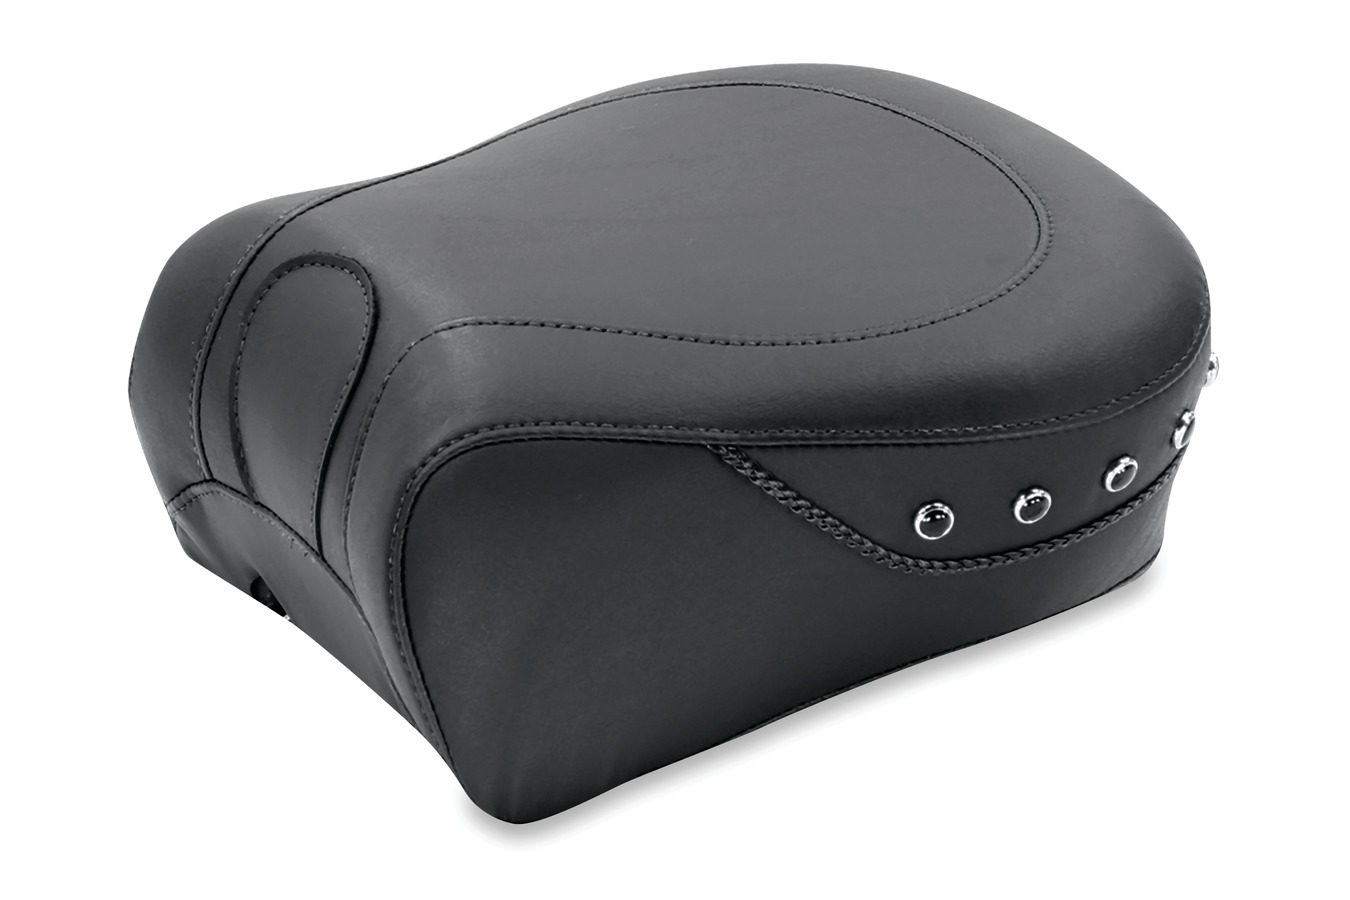 Recessed Passenger Seat for H-D Lowdown™ Touring, Standard Touring & Super Touring, Black Pearl-Centered Studded, Black, Width: 11""